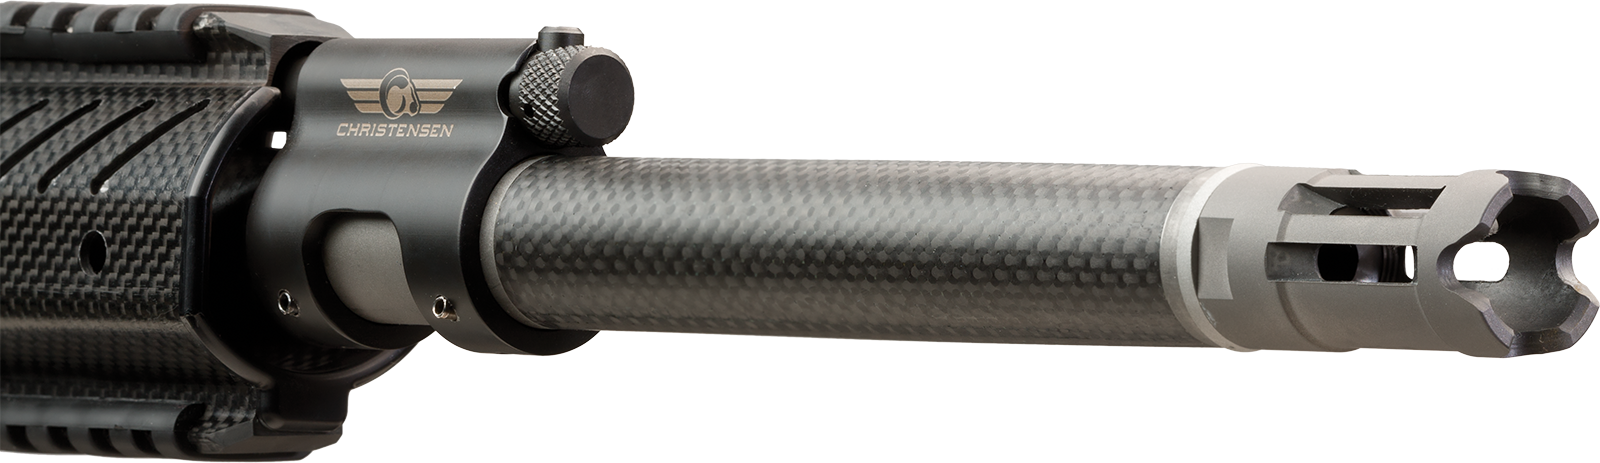 Carbon Fiber Barrel Prices Drop